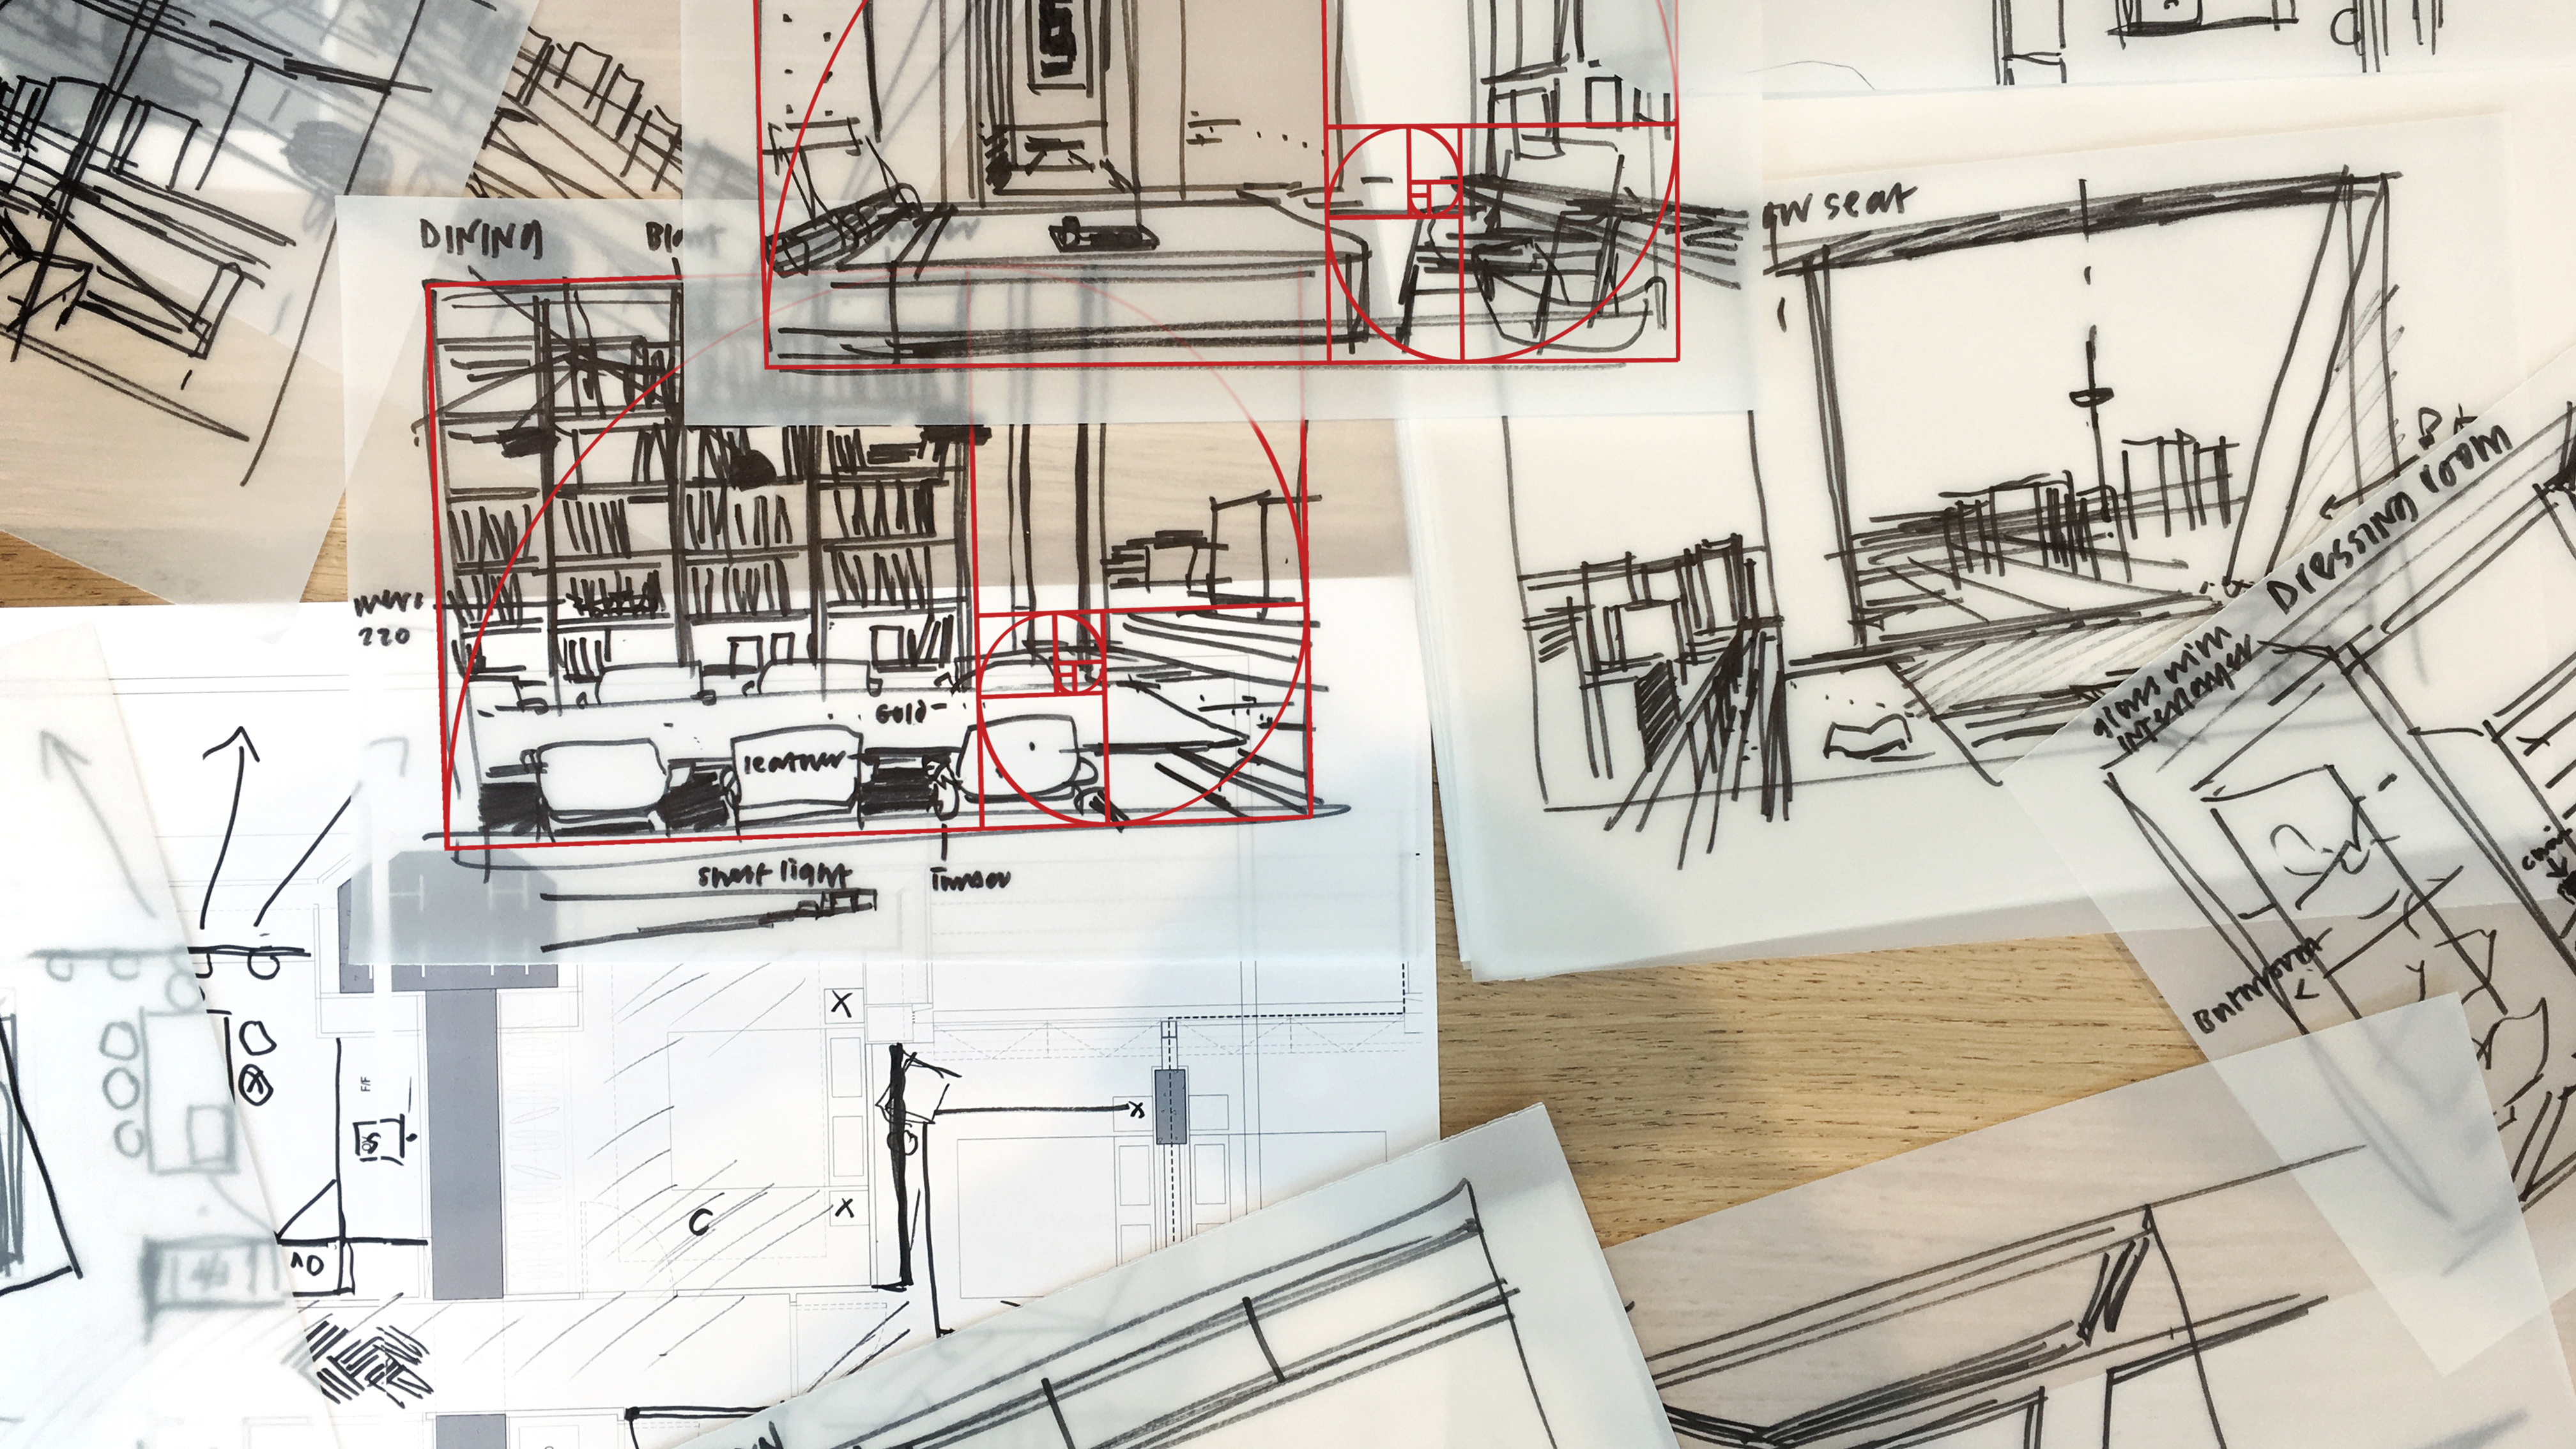 Hand-drawings by Foster + Partners' art director Narinder Sagoo